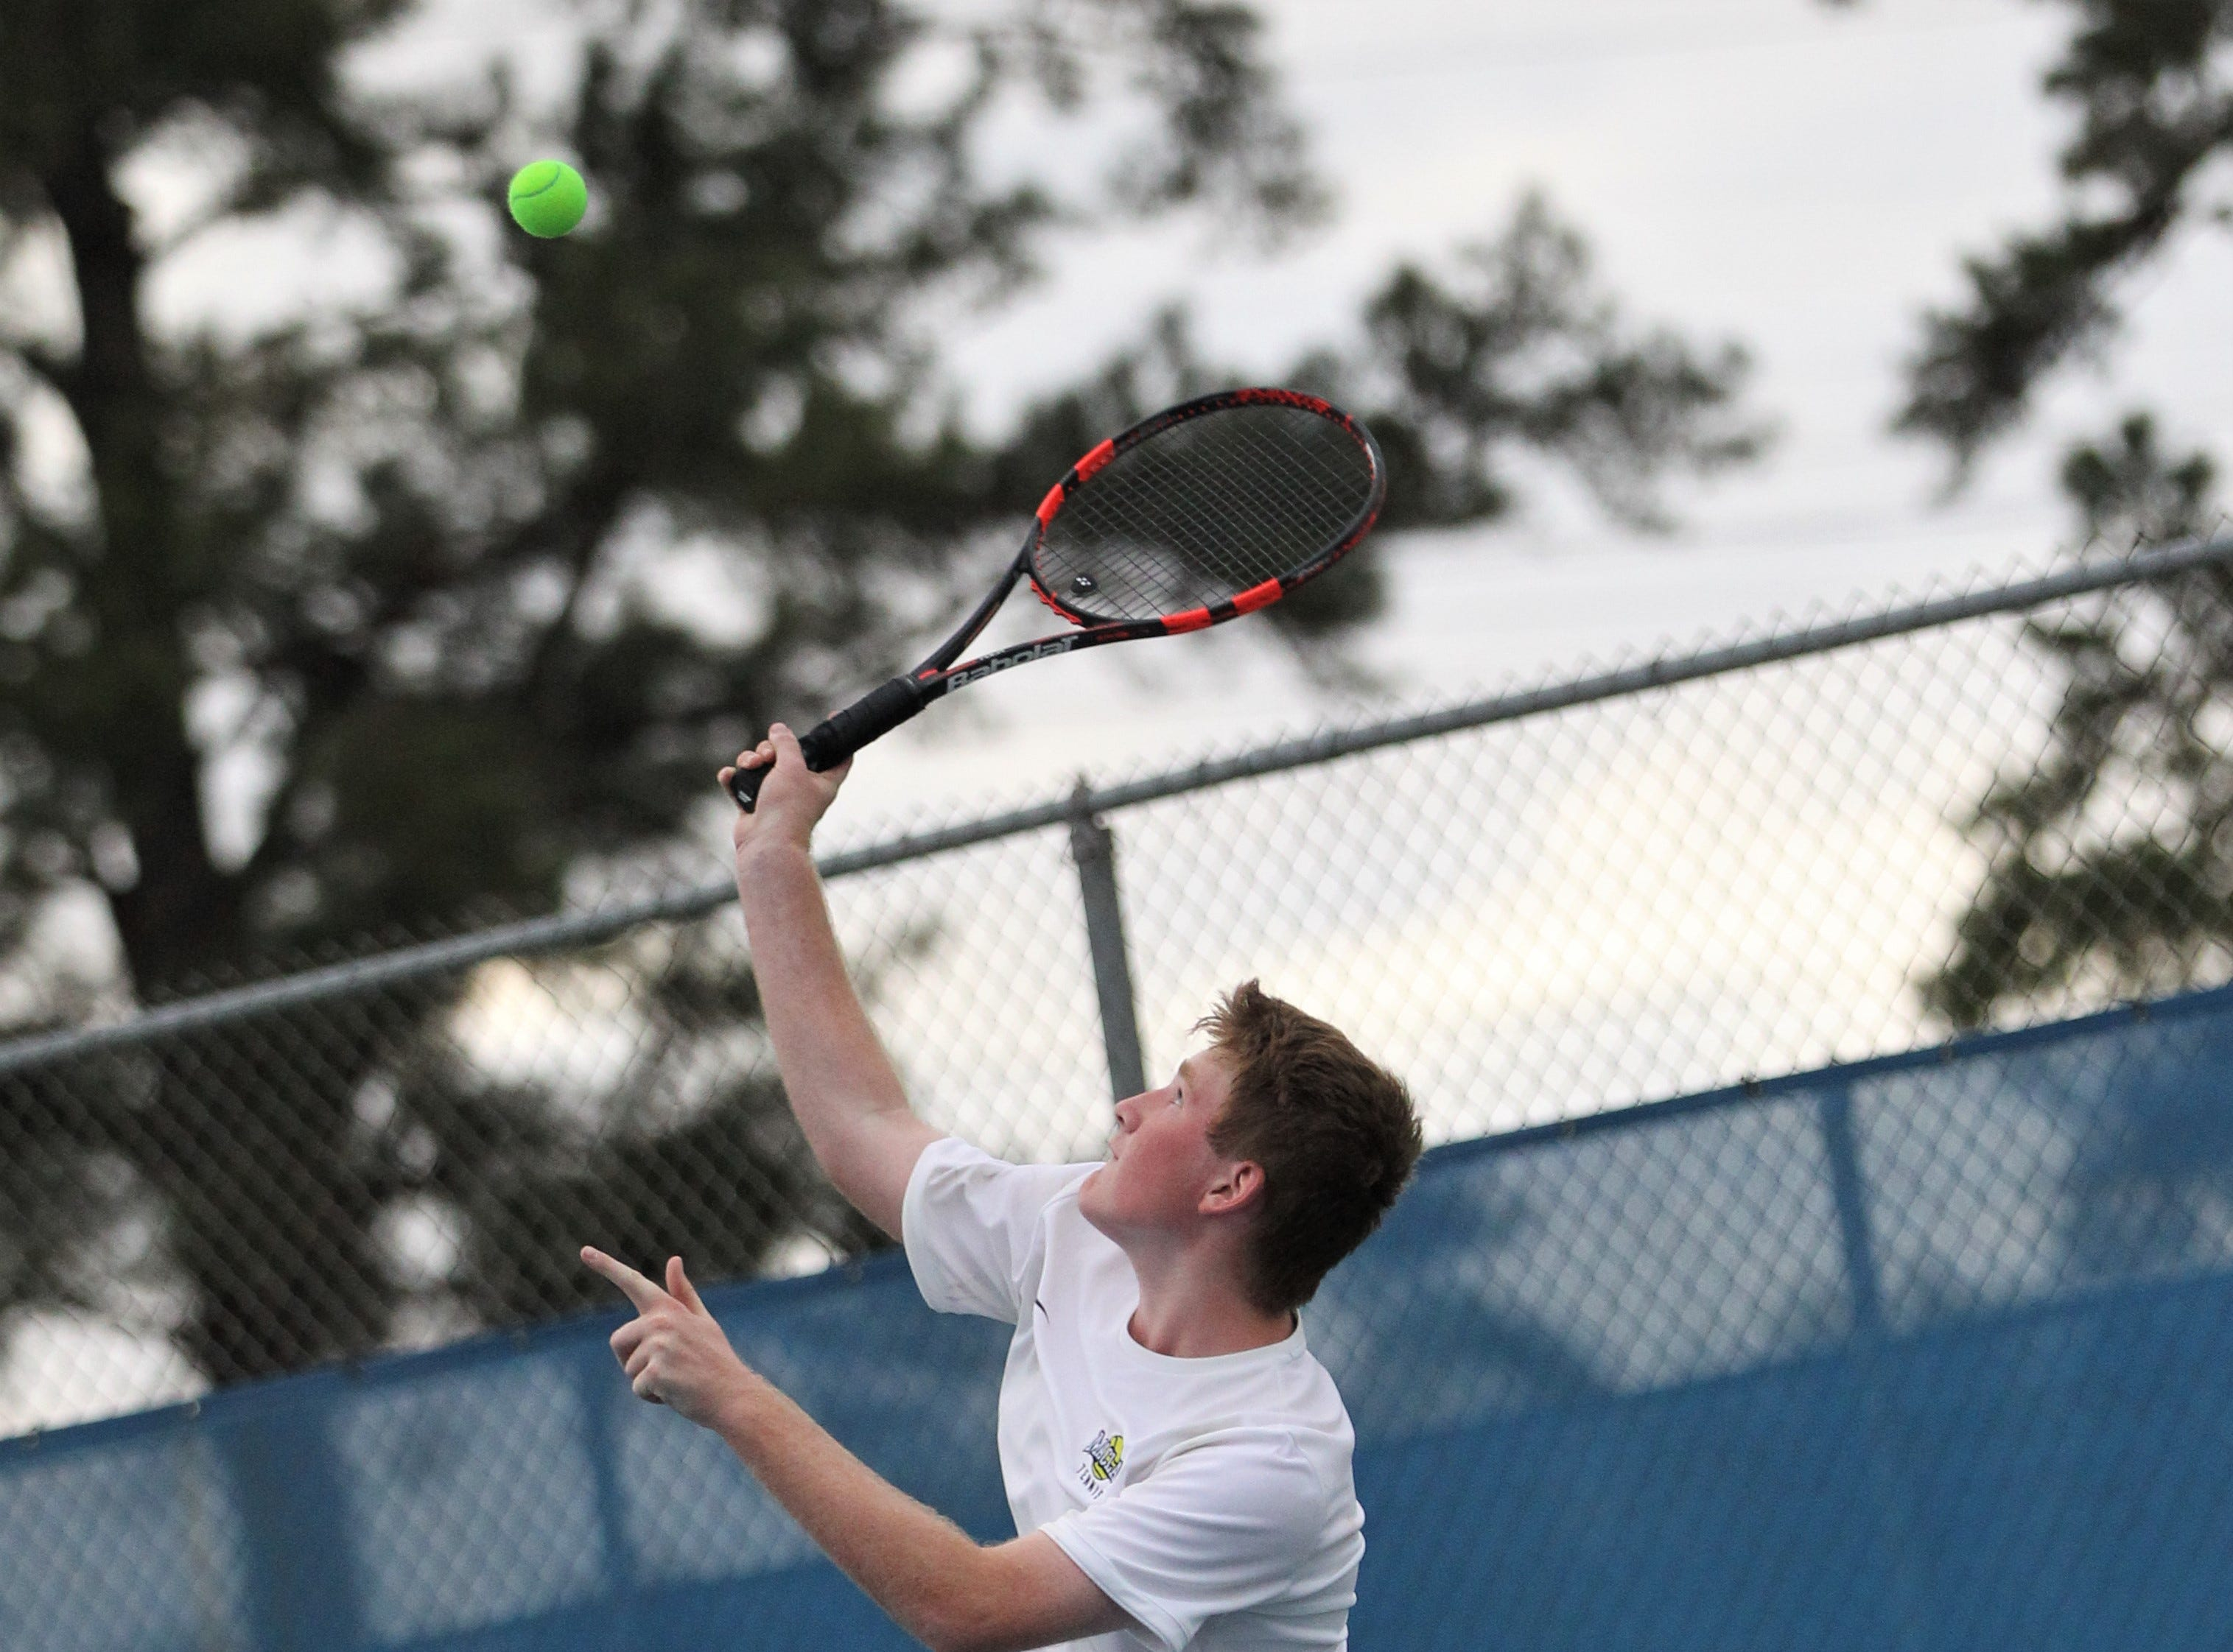 Maclay's Evan Stewart serves during the high school boys and girls city tennis tournament at Tom Brown Park on Thursday, March 14, 2019.